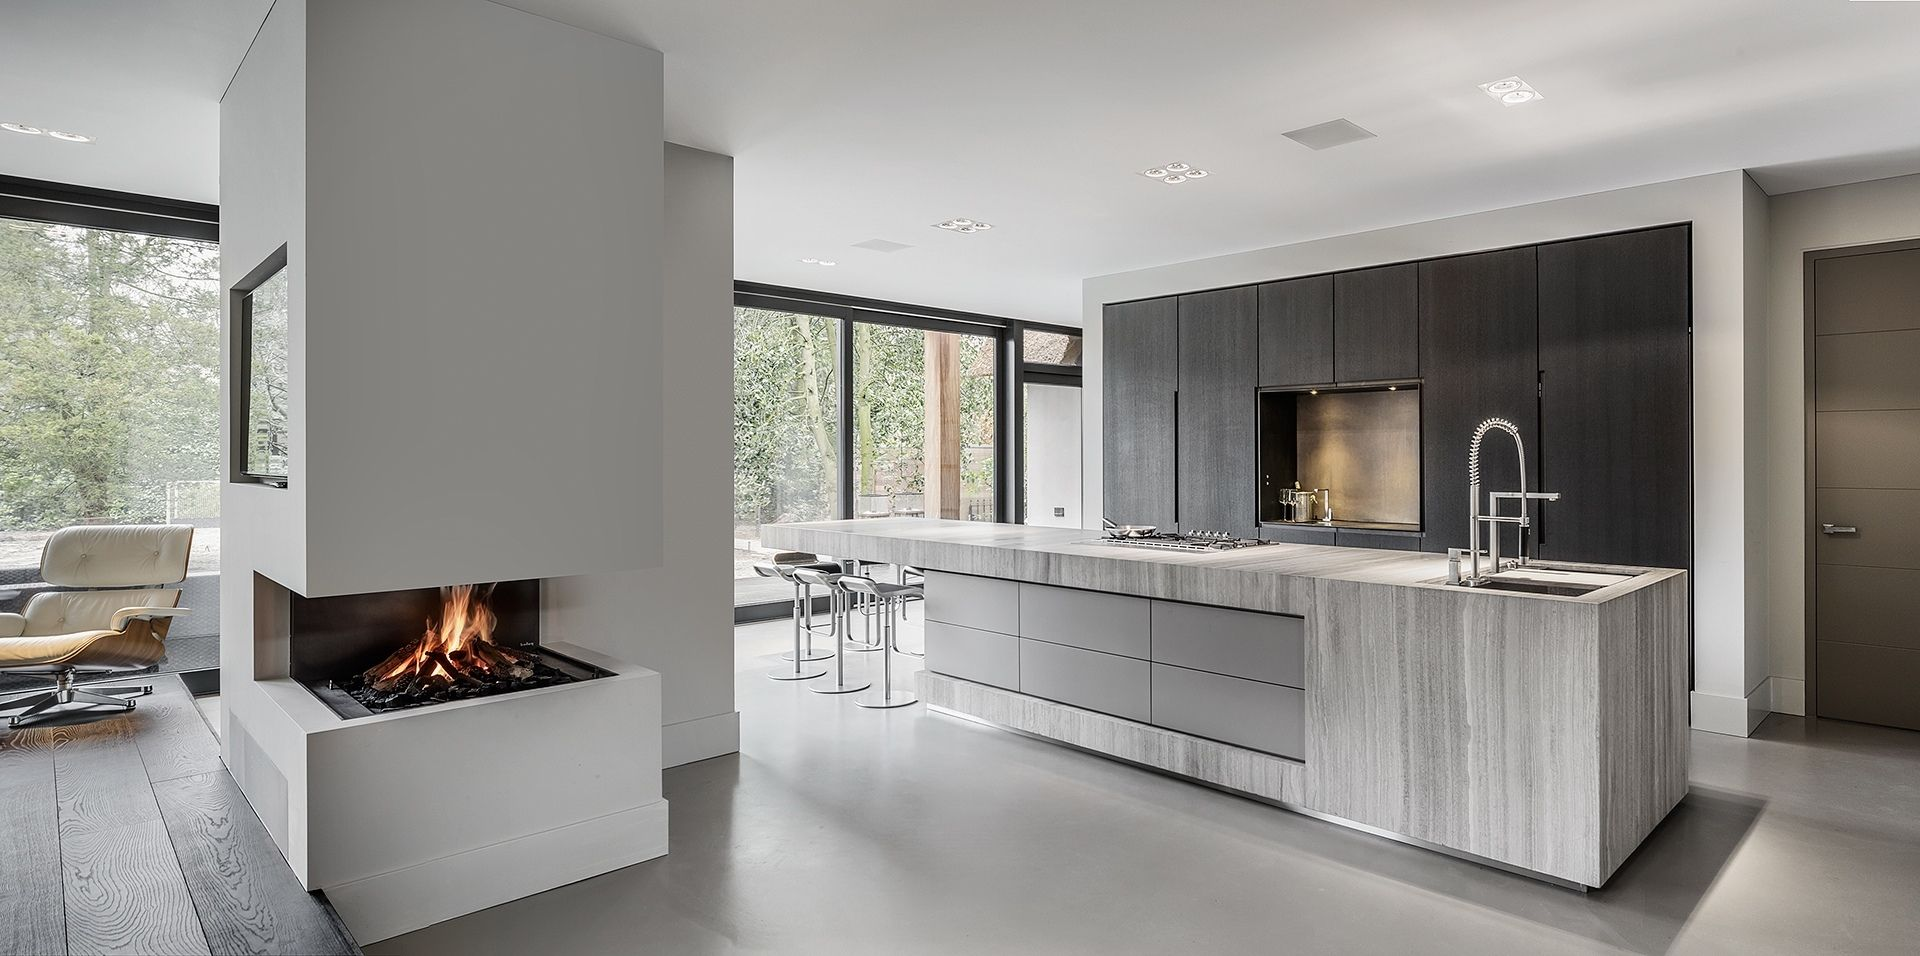 Culimaat   High End Kitchens | Interiors | ITALIAANSE KEUKENS EN  MAATKEUKENS   BLOXX